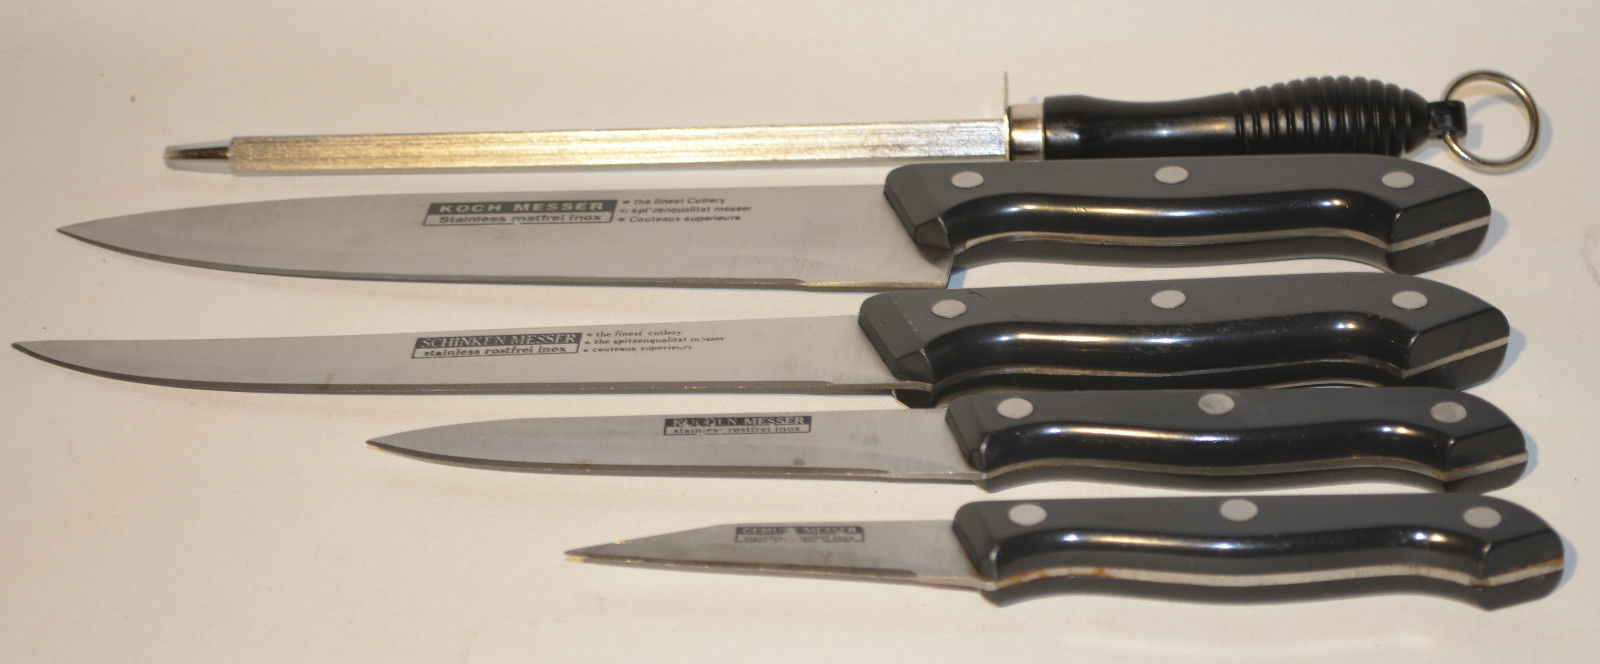 Messer Kitchen Knife Set